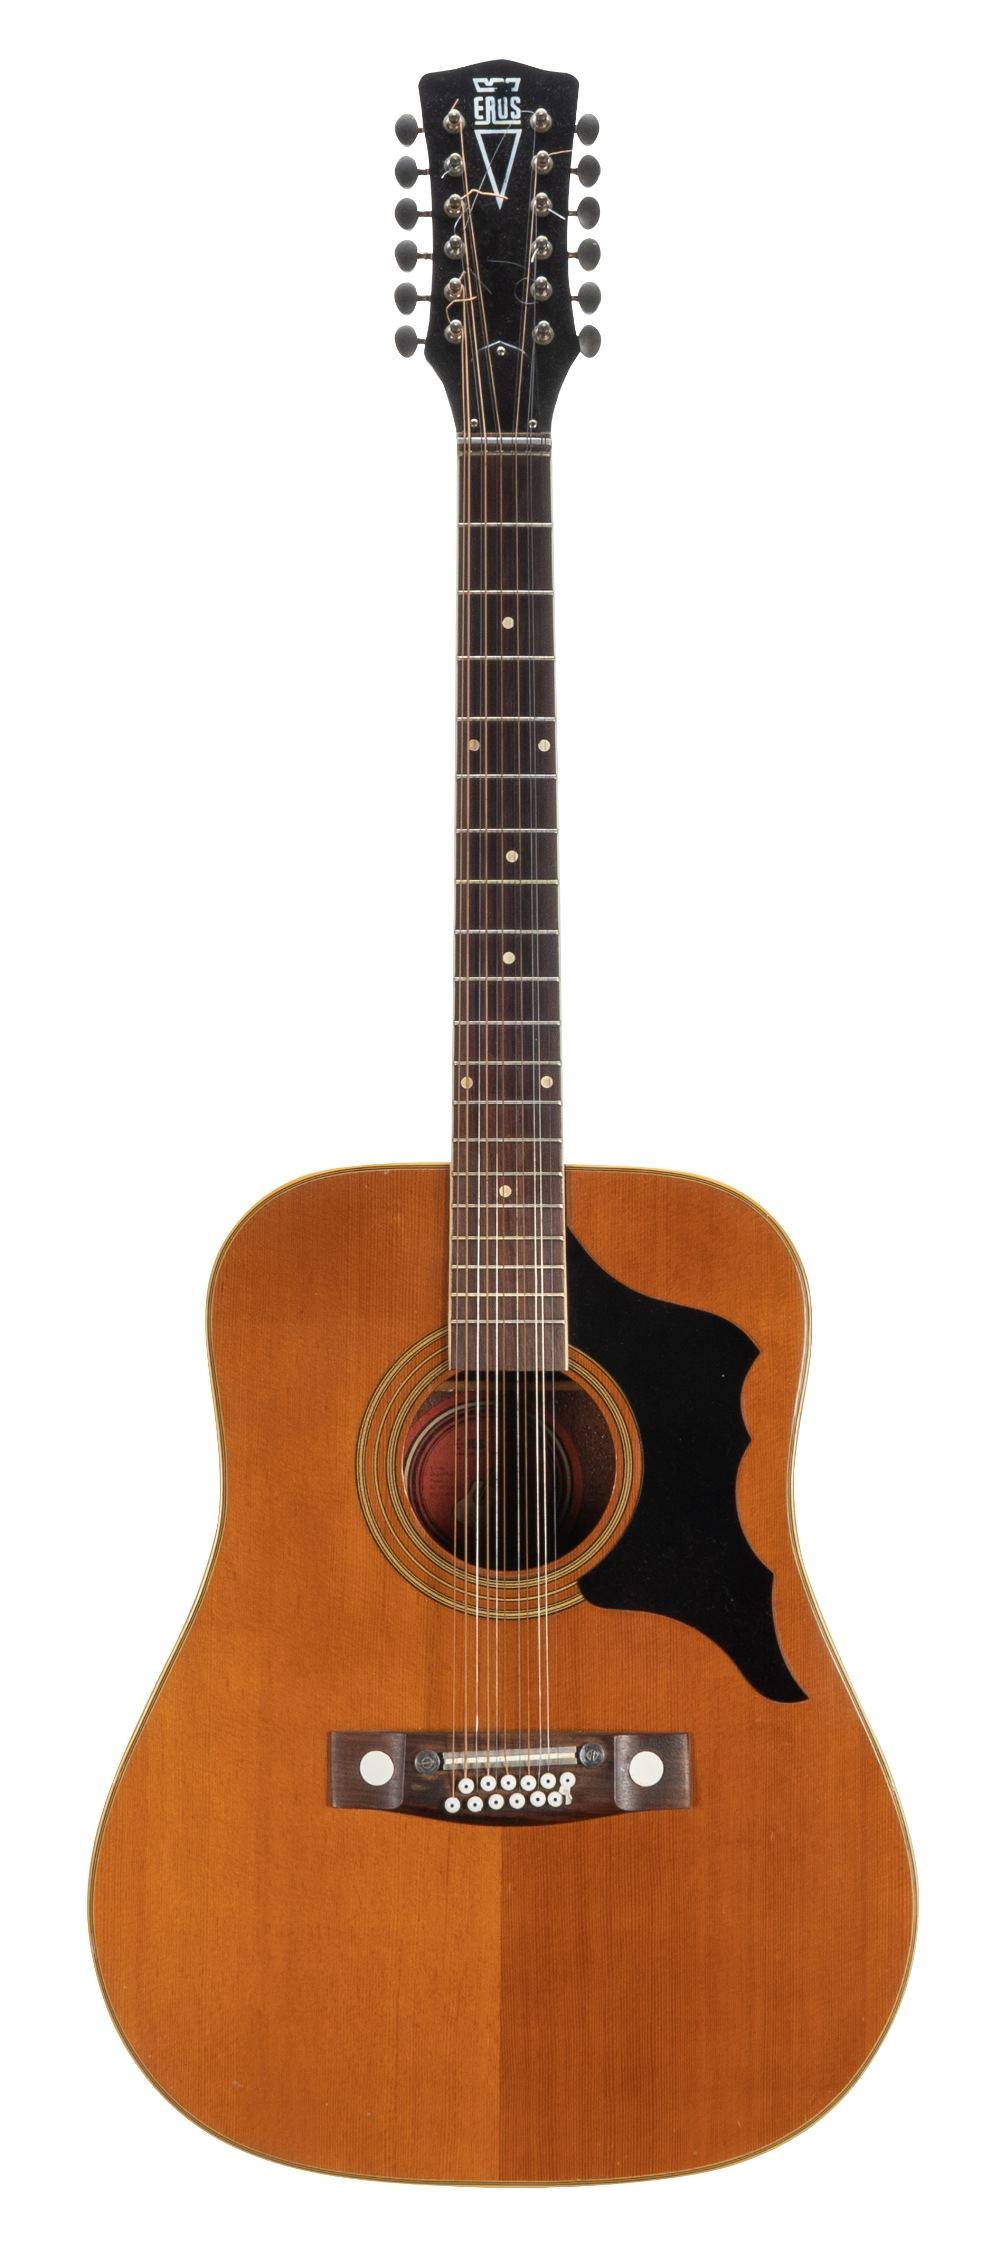 Lot 49 - 1970s Eros 14228 twelve string acoustic guitar in need of attention (bridge plate slightly lifting